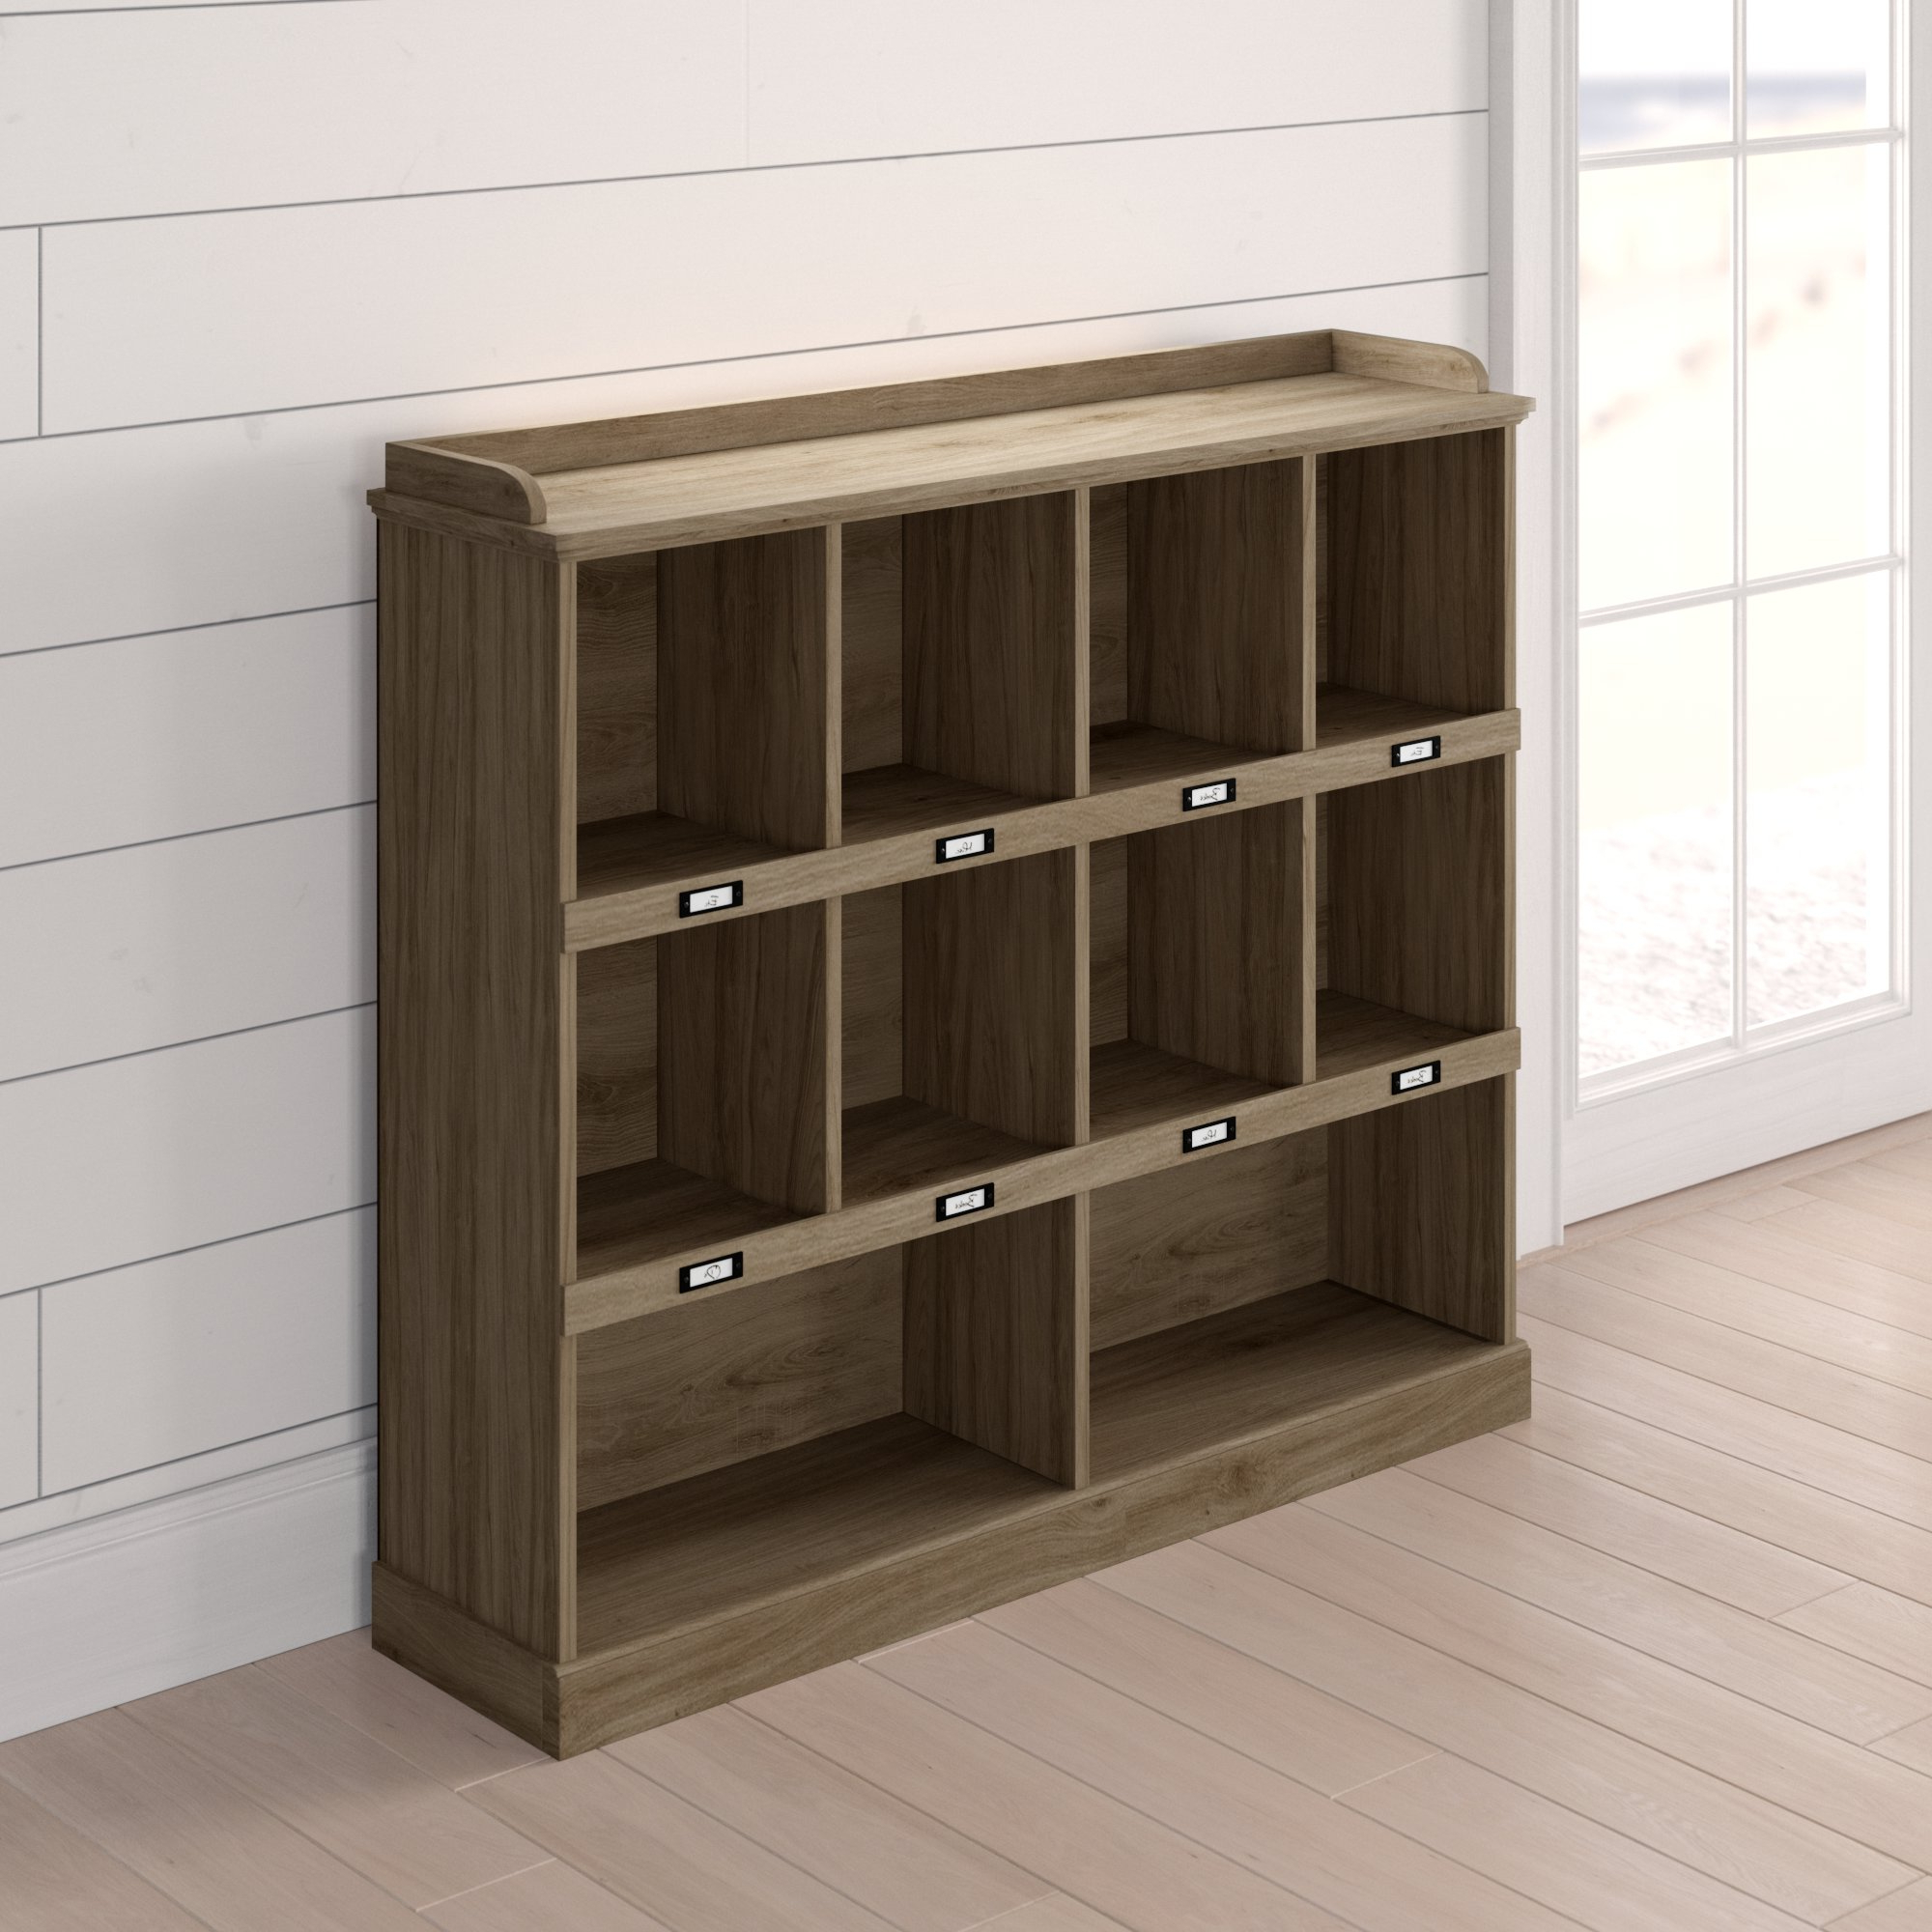 2019 Bowerbank Standard Bookcases Within Bowerbank Standard Bookcase (Gallery 3 of 20)